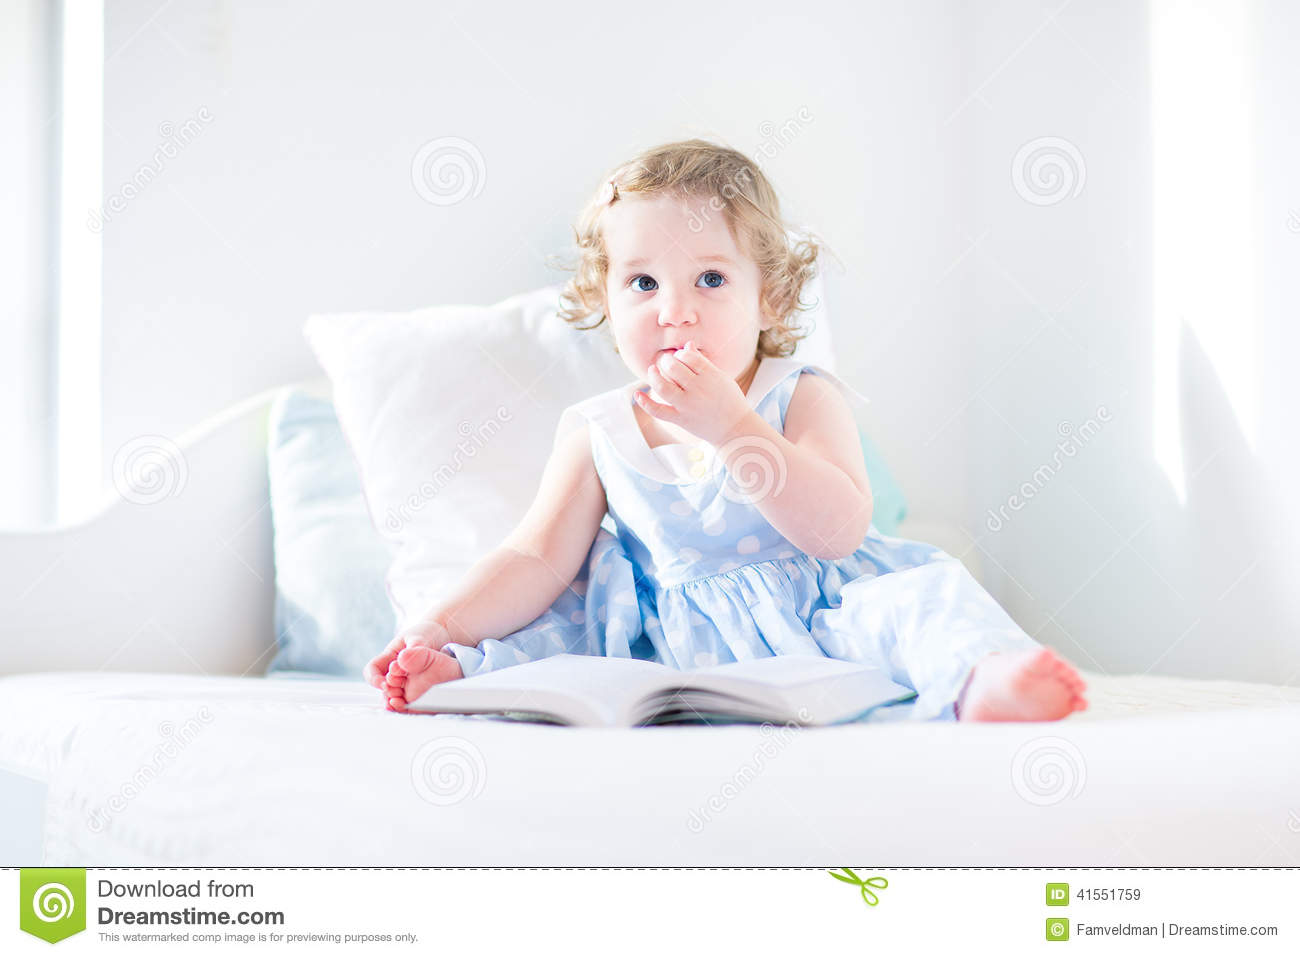 Cute Reading Chairs Adorable Toddler Girl Reading Book In Rocking Chair Stock